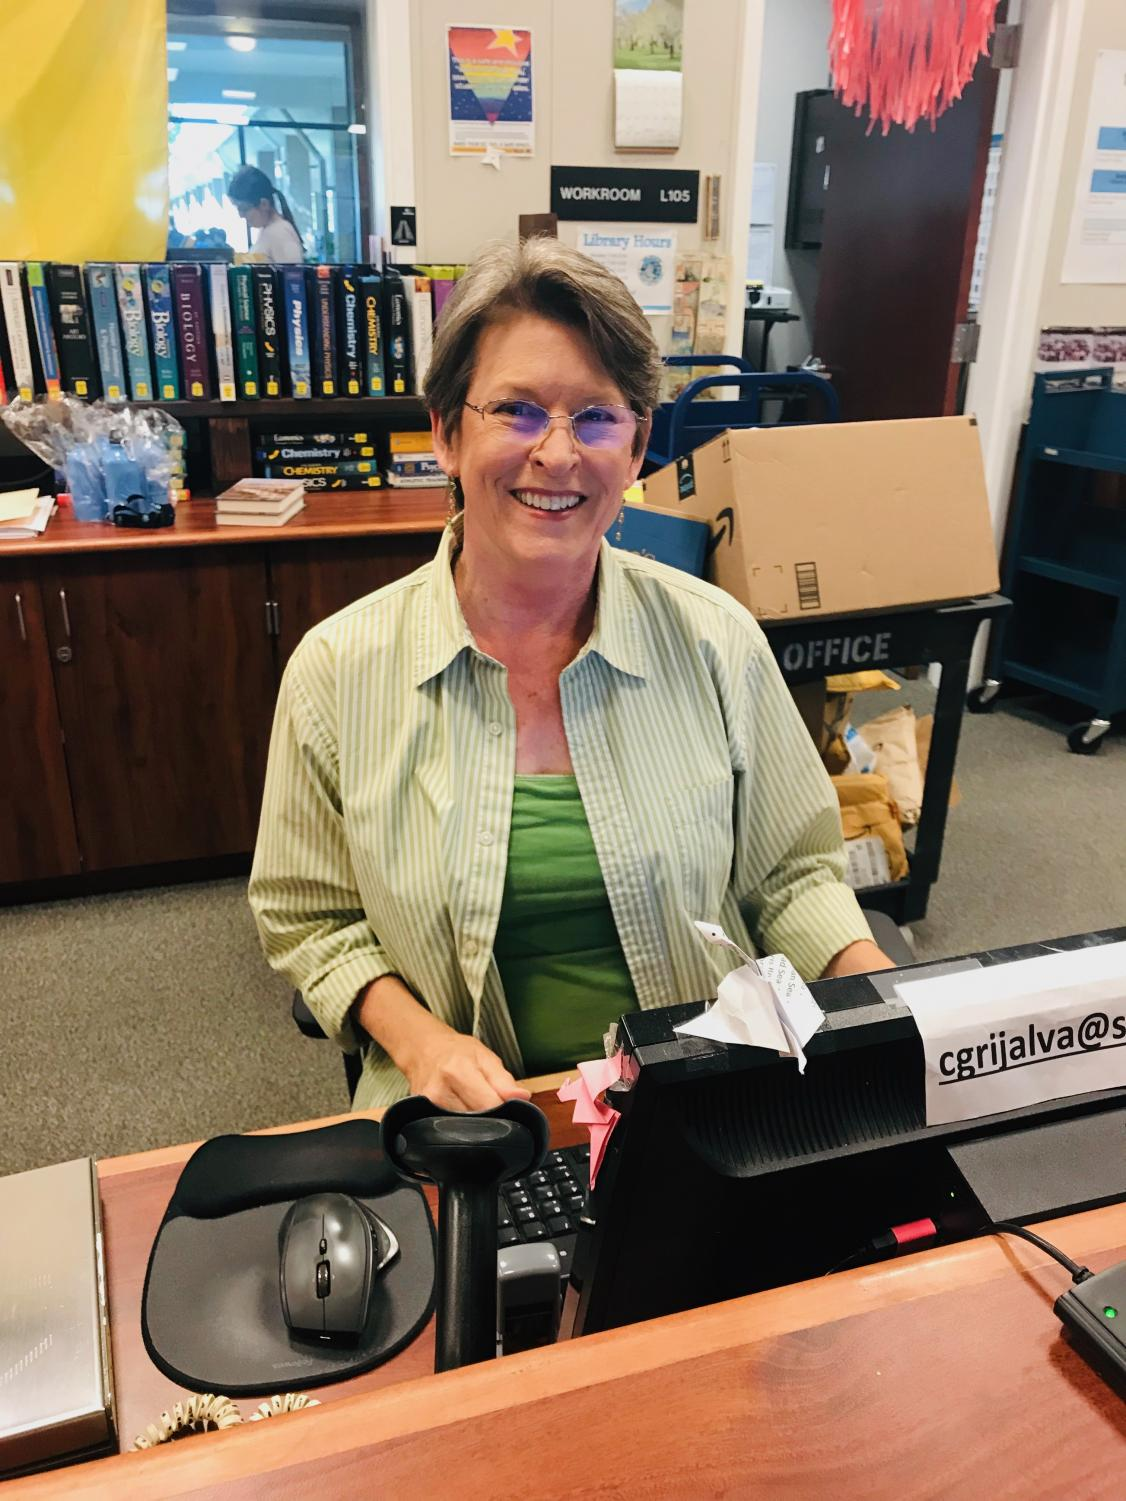 After nine years at Dougherty Valley, Mrs. Catherine Grijalva plans to retire from the library at the end of the year.